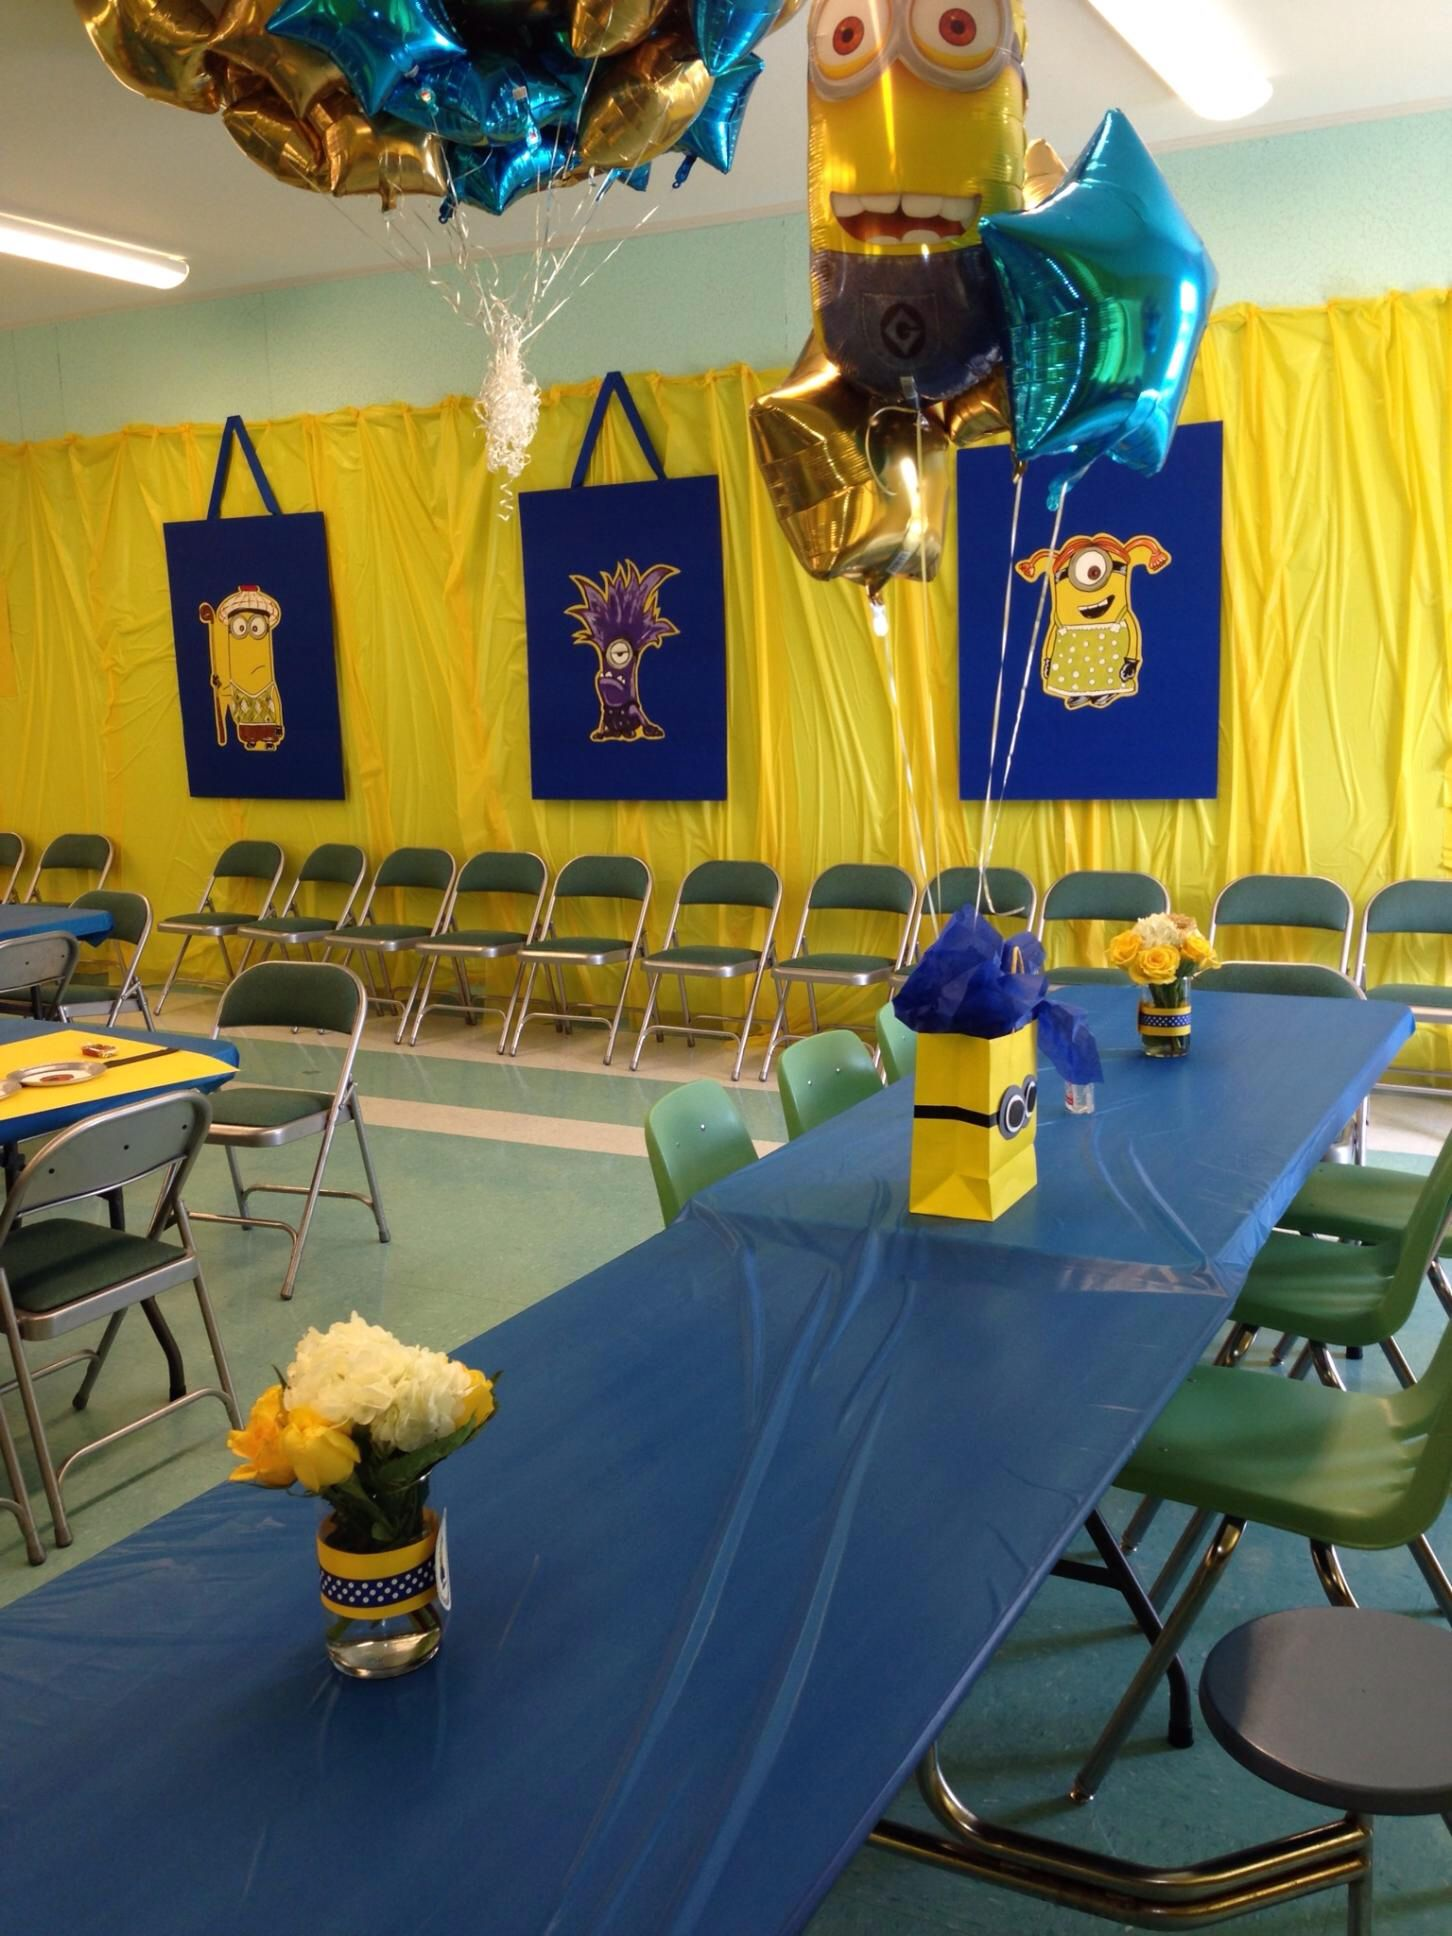 Our large minions make an awesome wall decoration | Party ideas ...